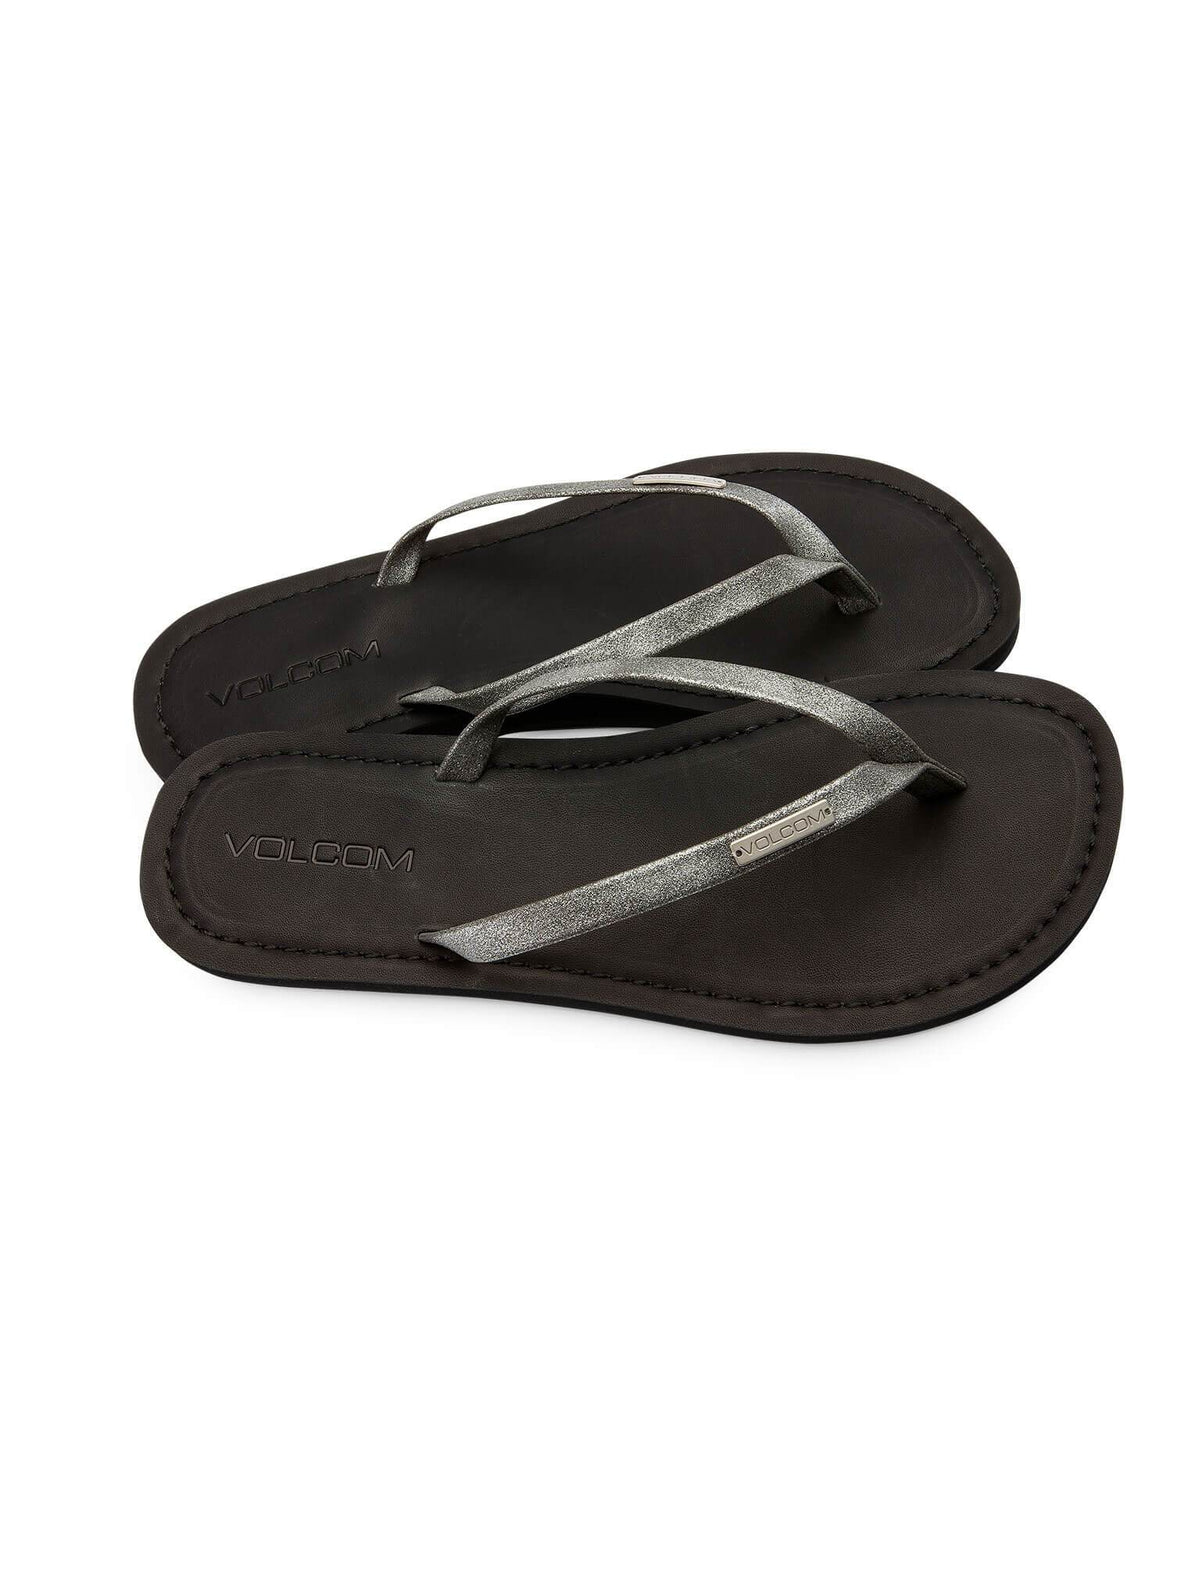 Lagos Sandals In Gunmetal Grey, Front View